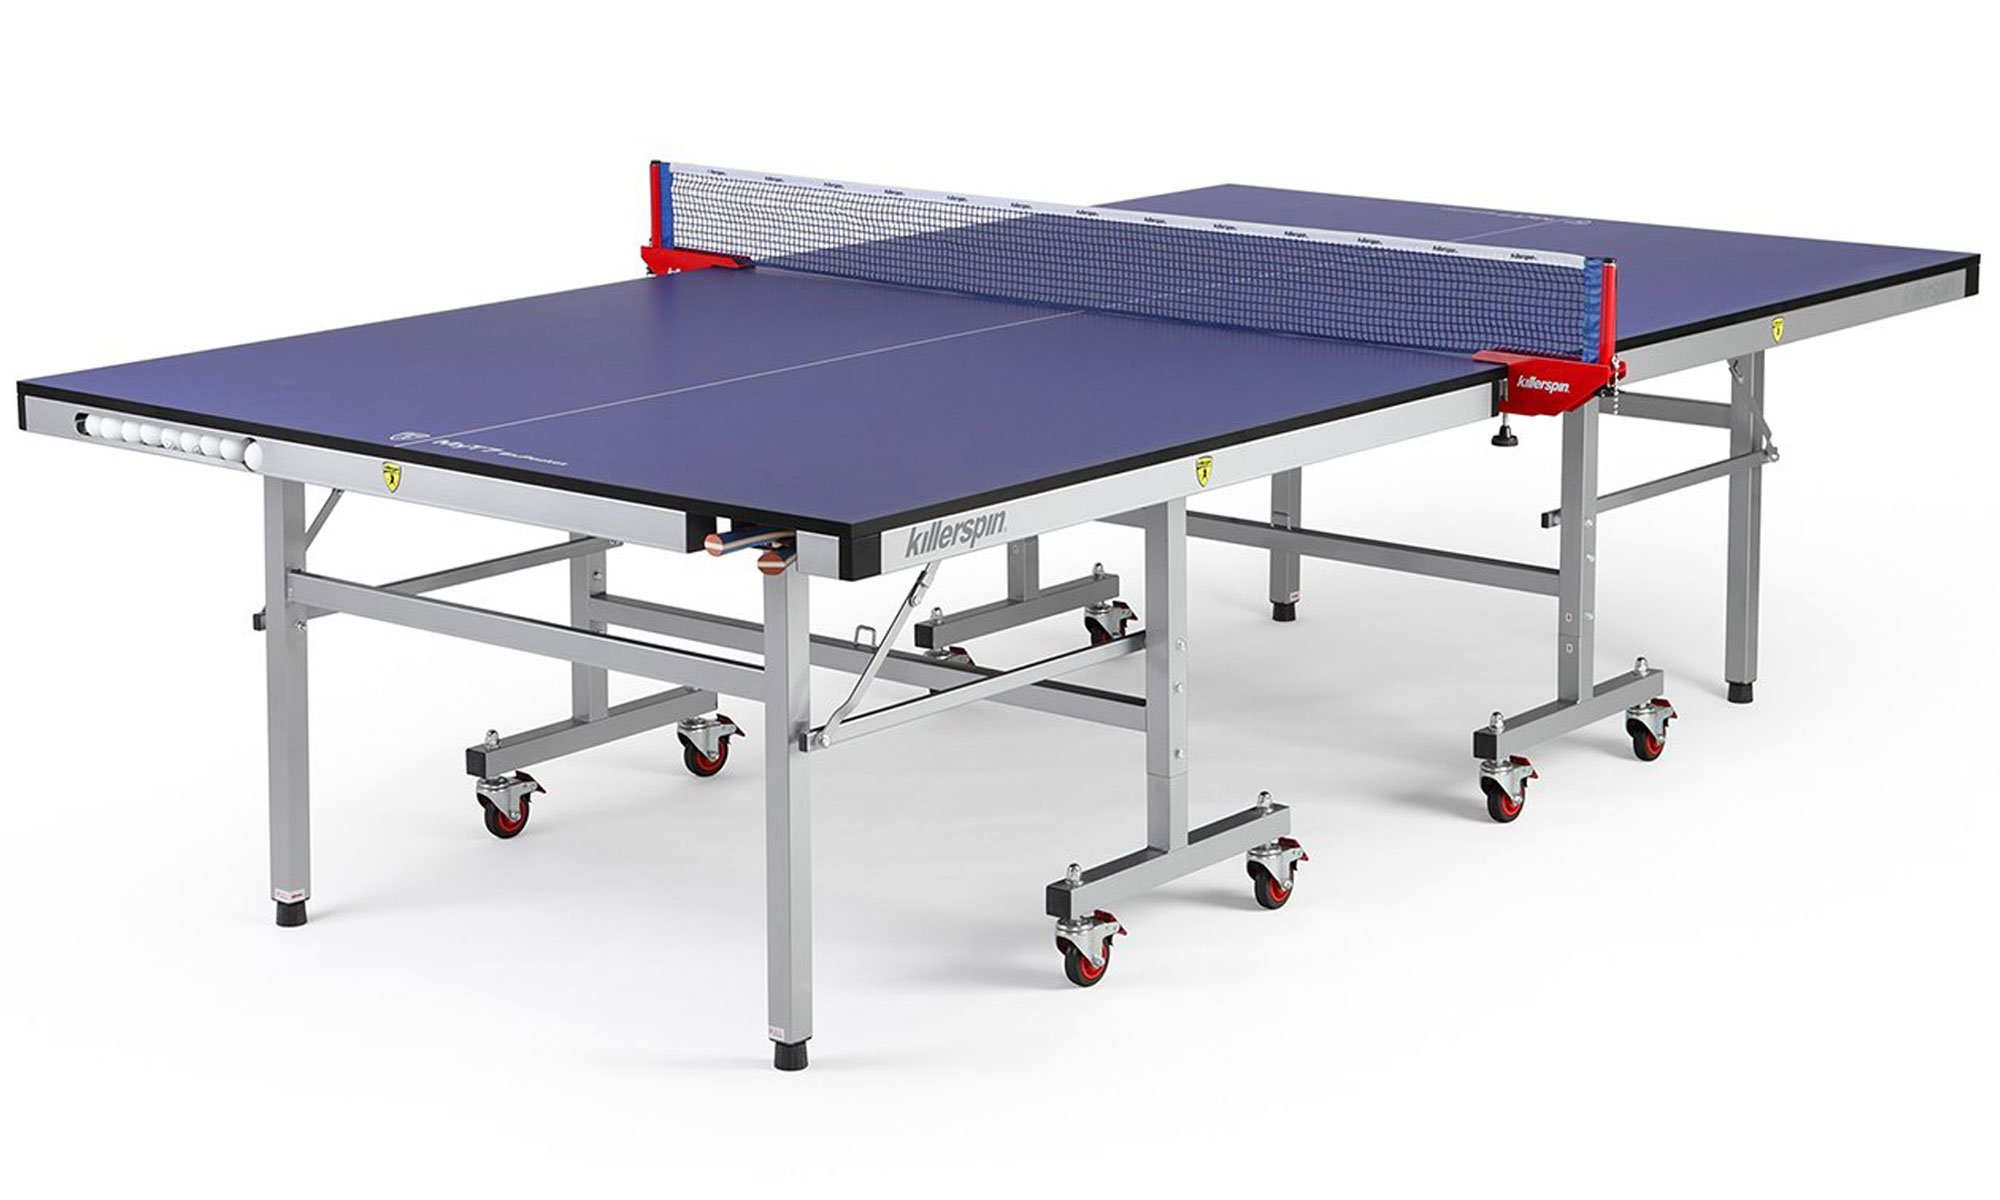 Killerspin MyT7 Indoor Table Tennis Table